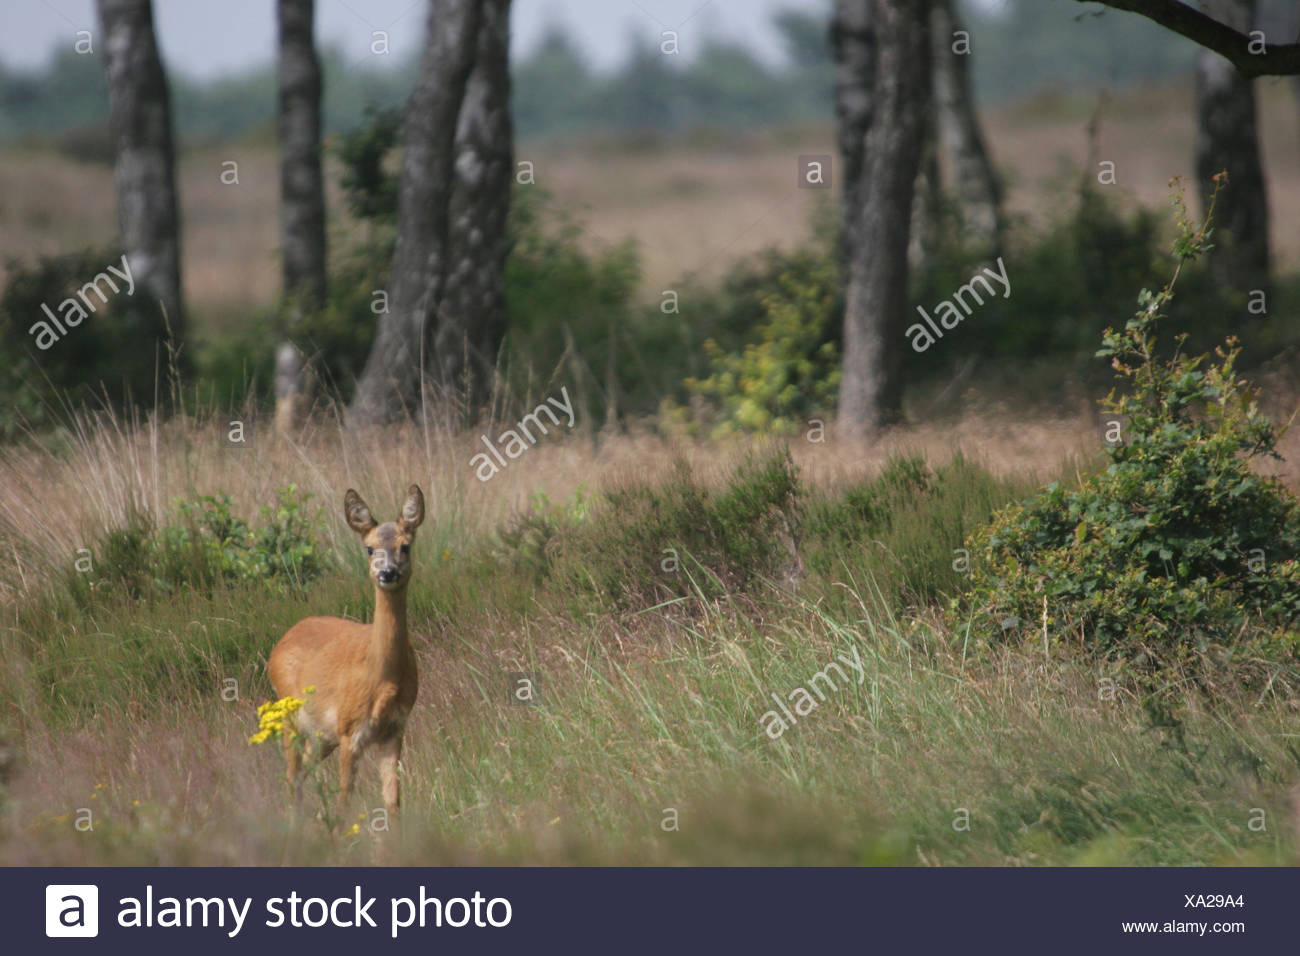 Roe deer standing in her natural environment Stock Photo